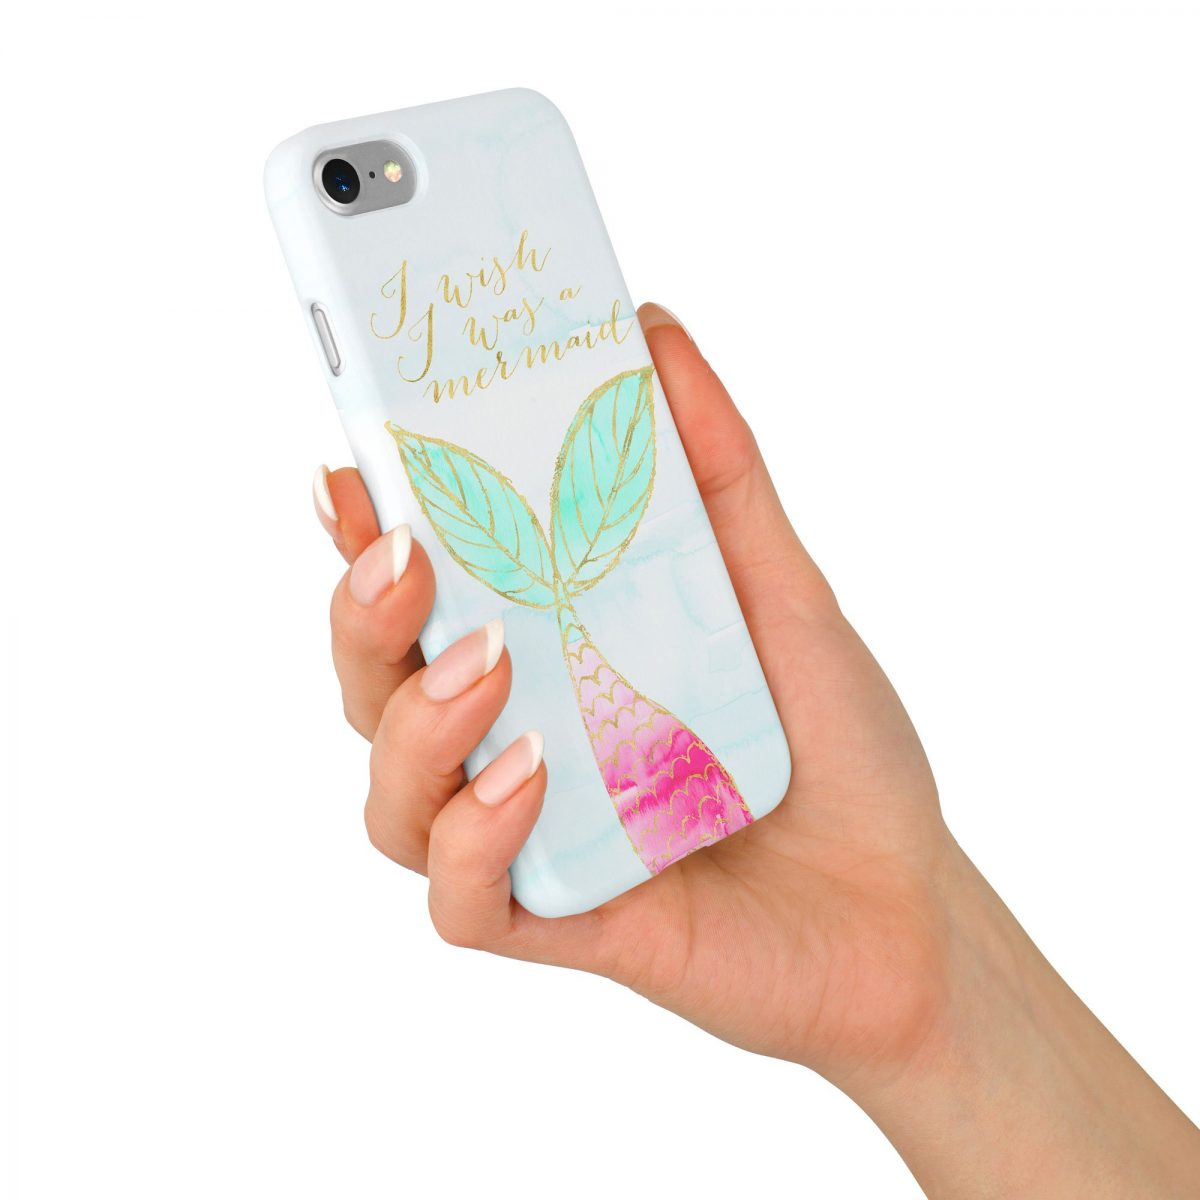 Tracey Coon 'Mermaid' Phone Case